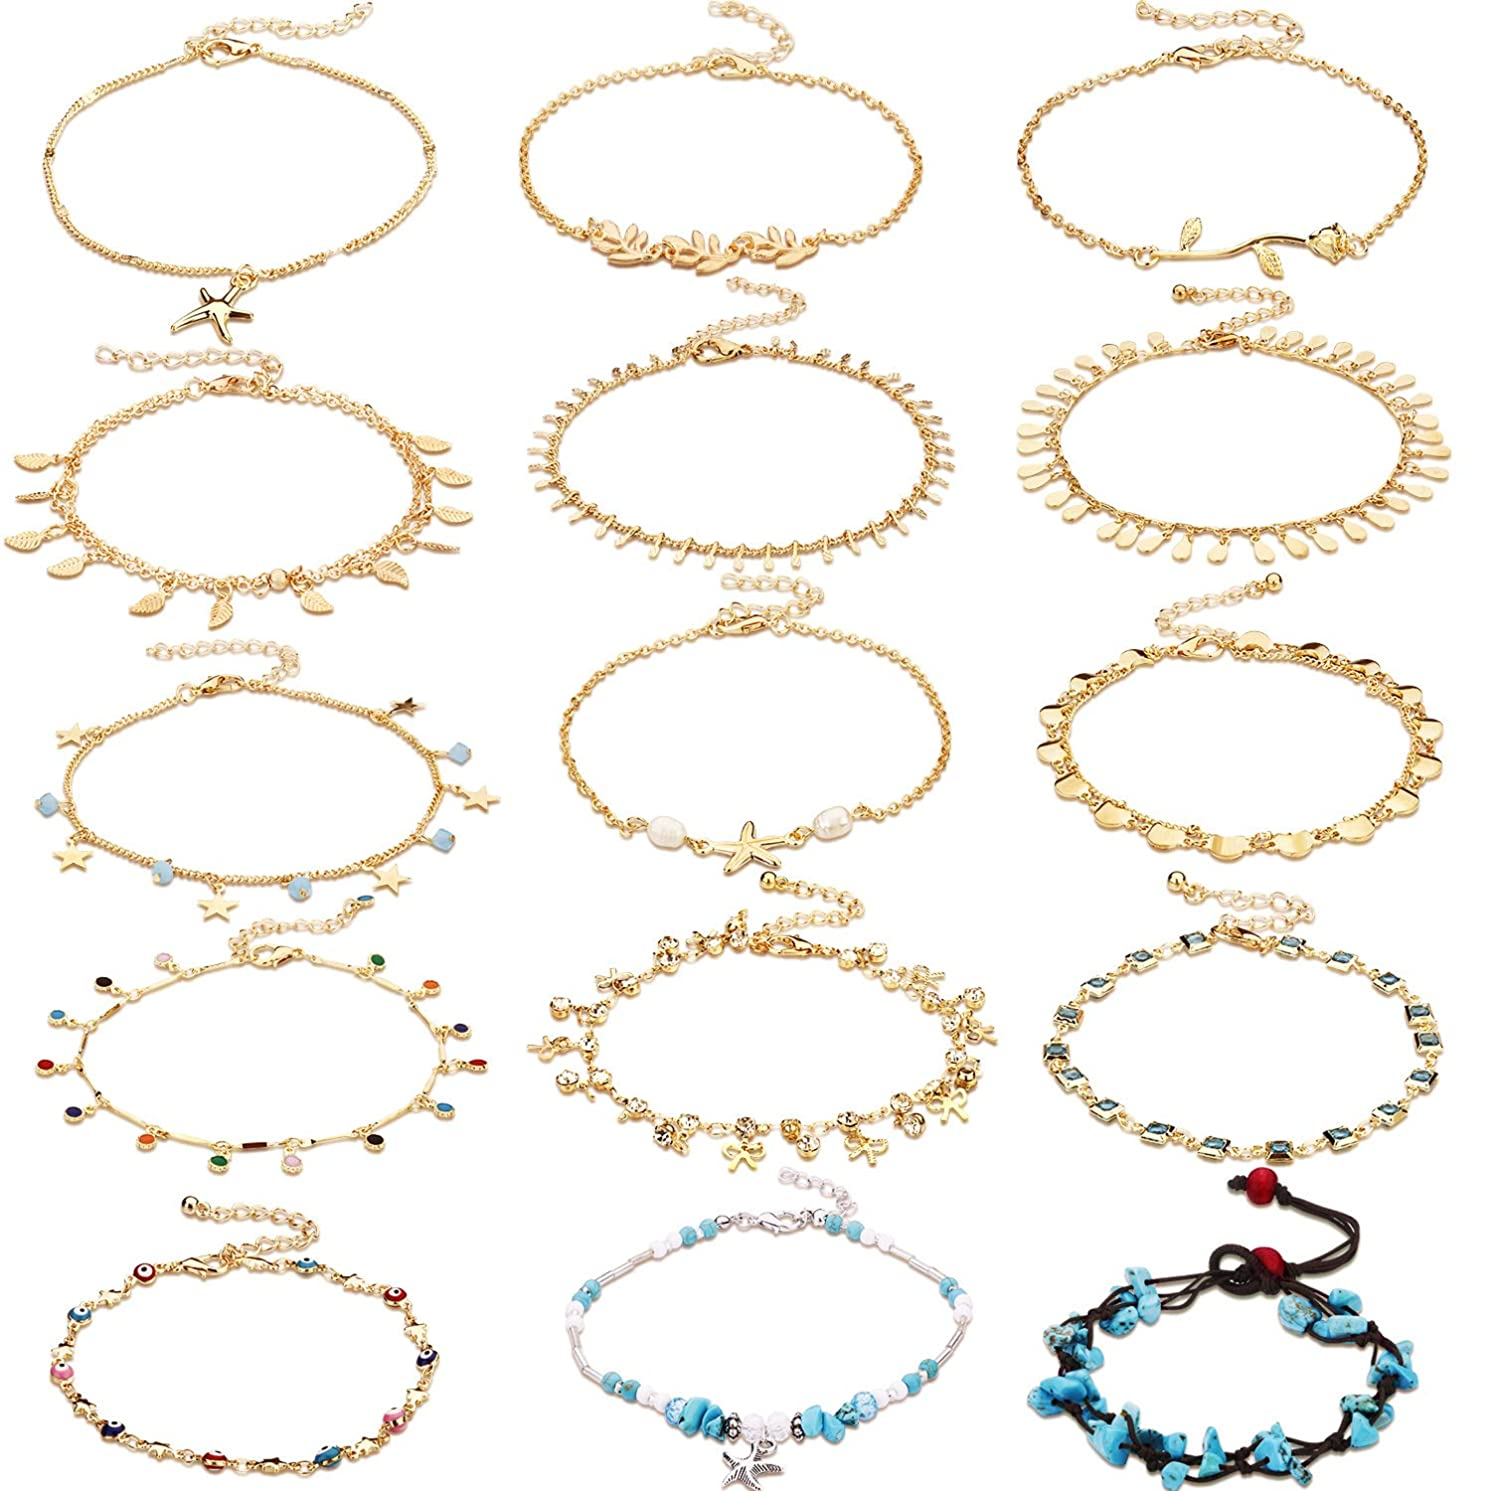 15 Pieces Ankle Chains Bracelets Adjustable Beach Anklet Foot Jewelry Set Anklets for Women Girls Barefoot